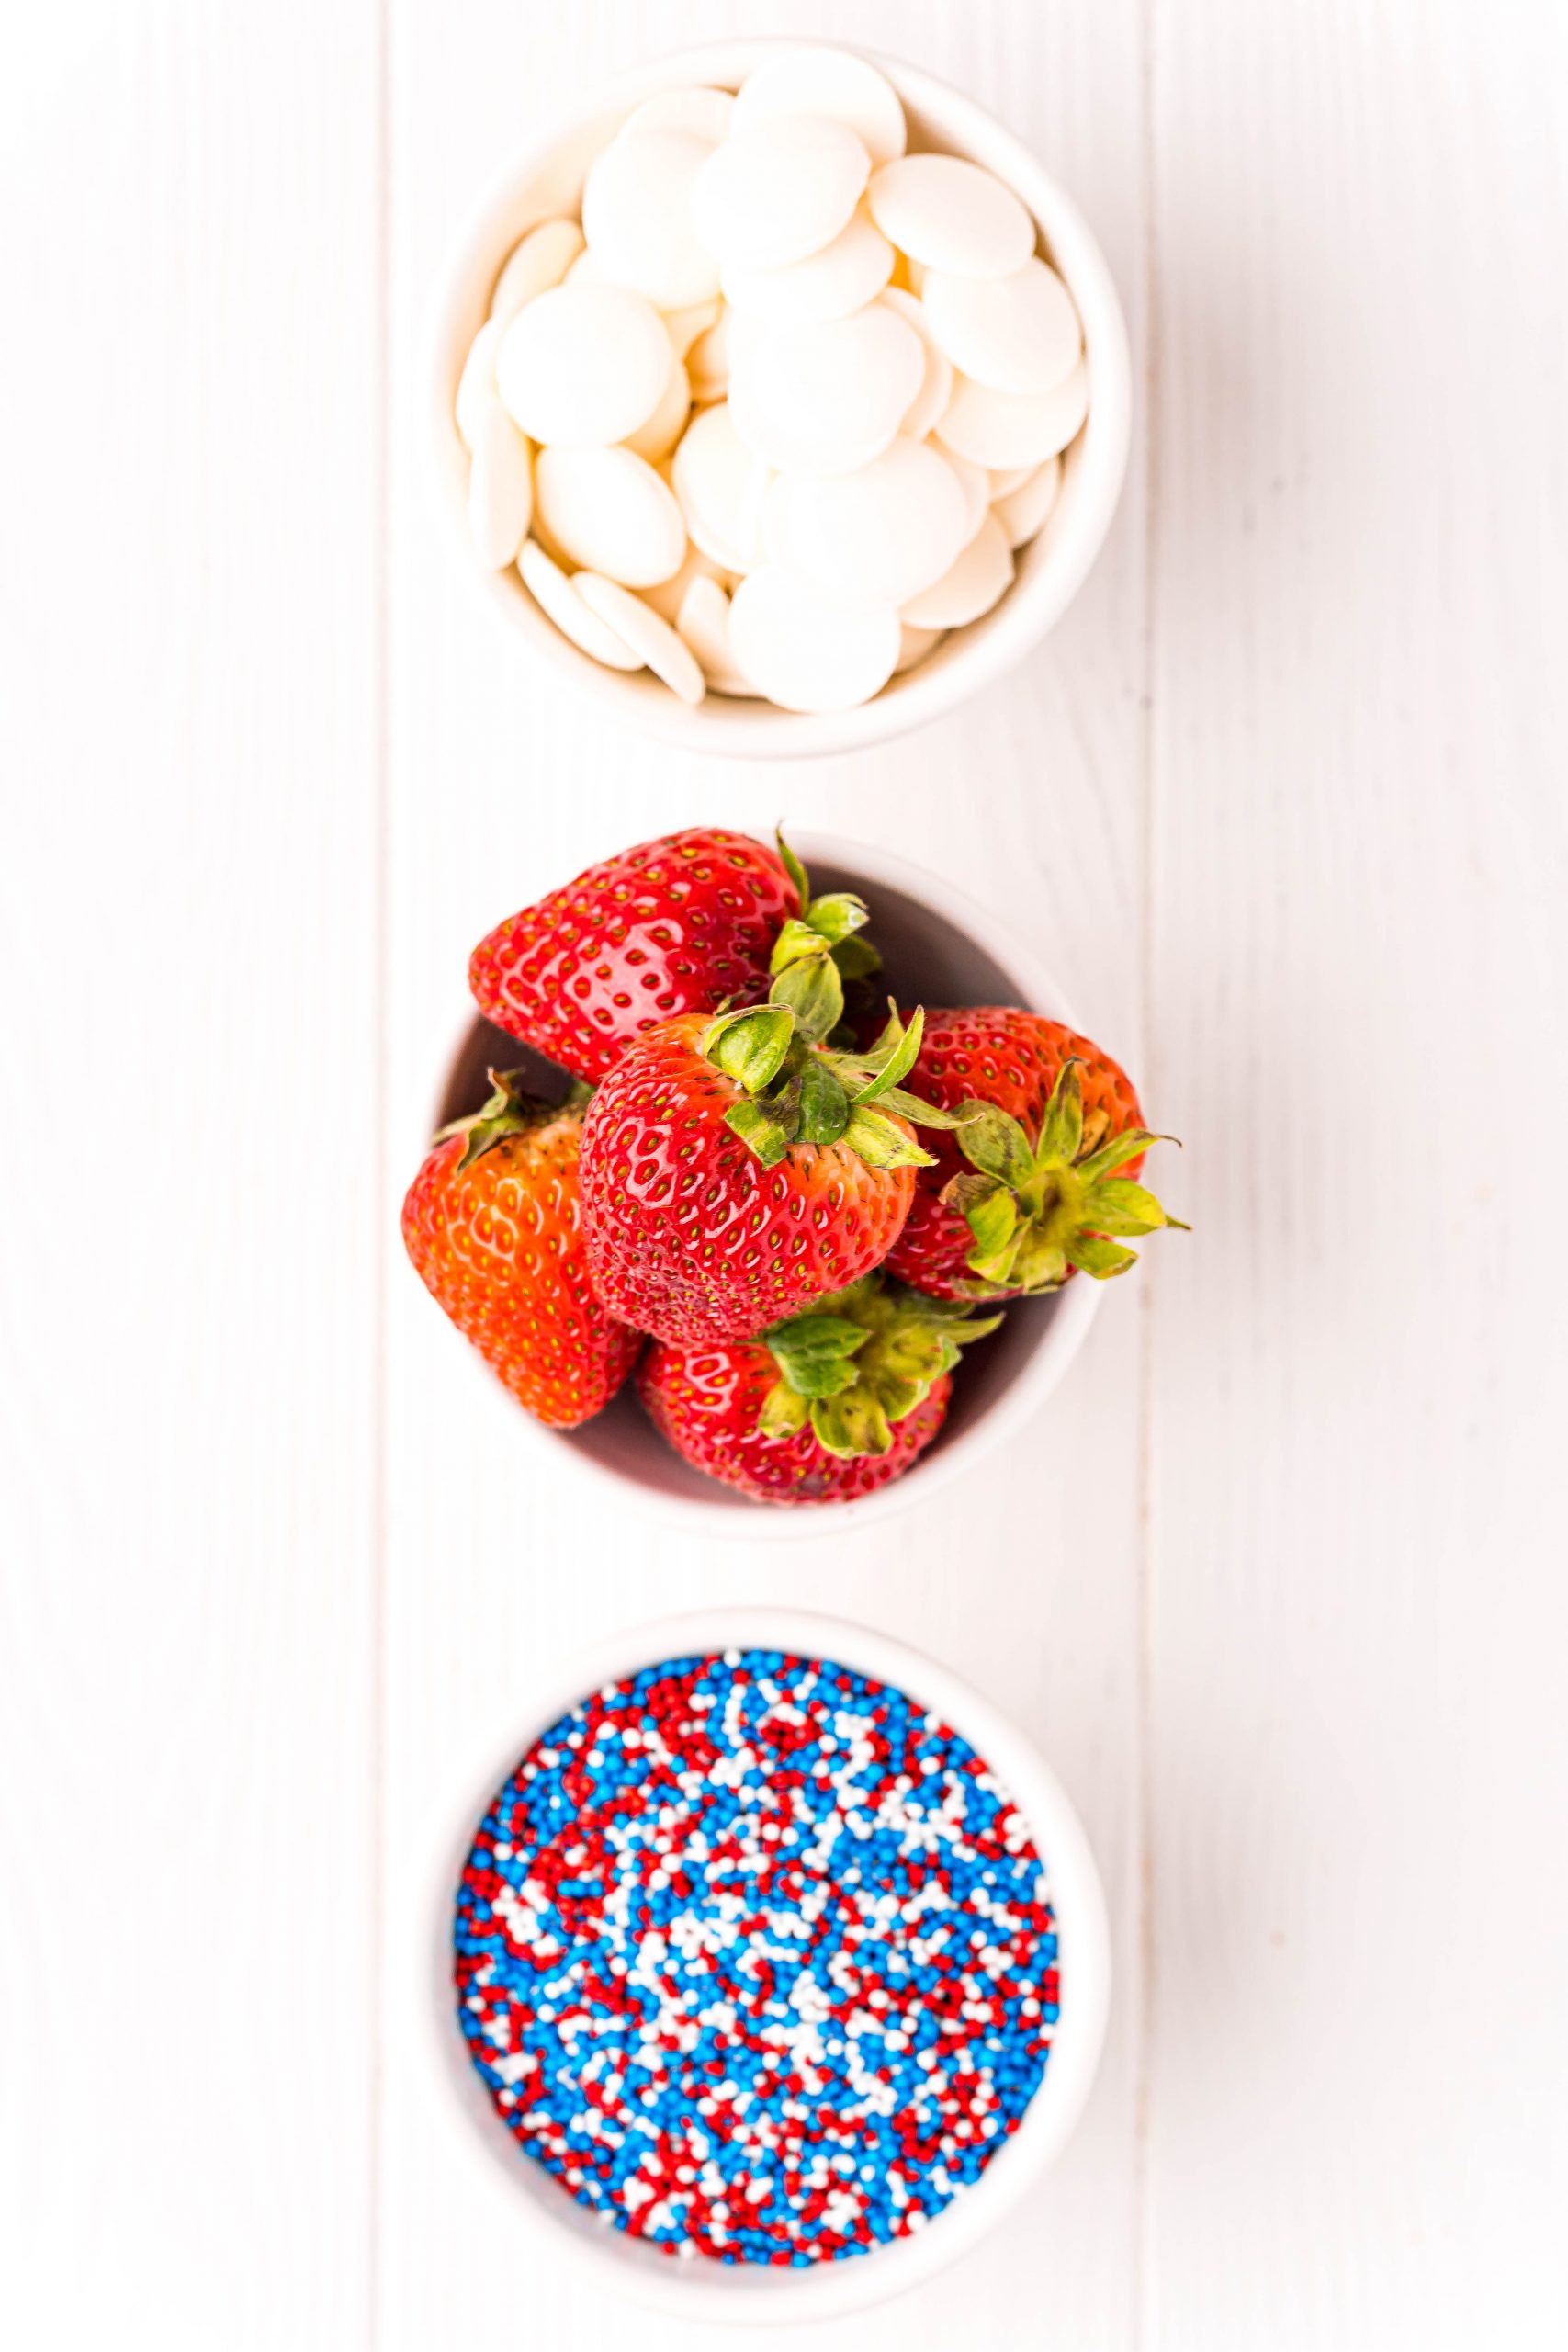 picture of white chocolate, strawberries, and sprinkles on a table